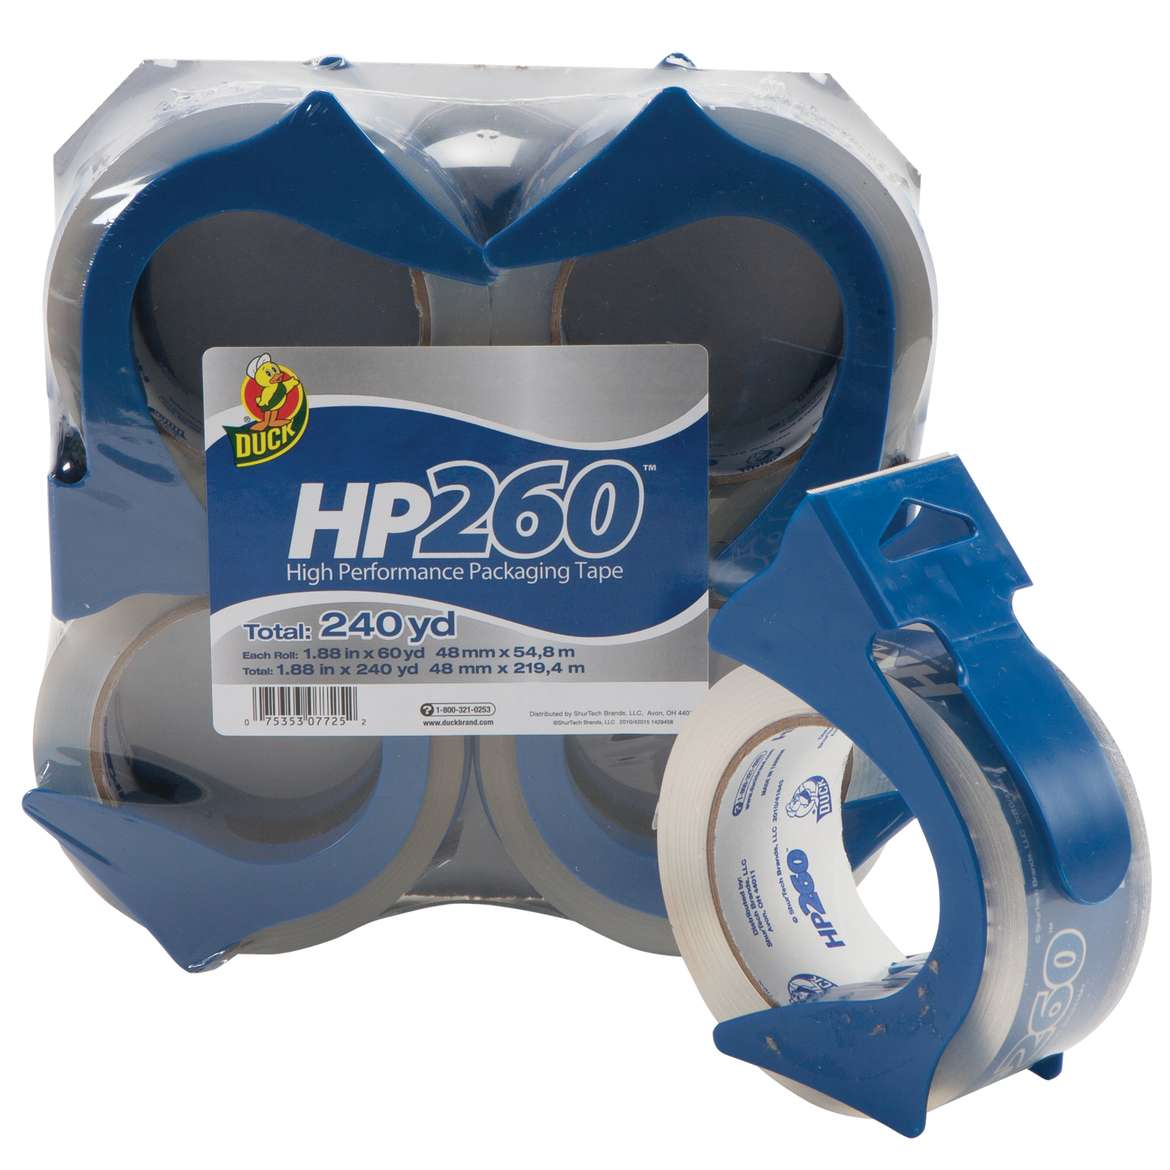 HP260™ High Performance Packaging Tape Image